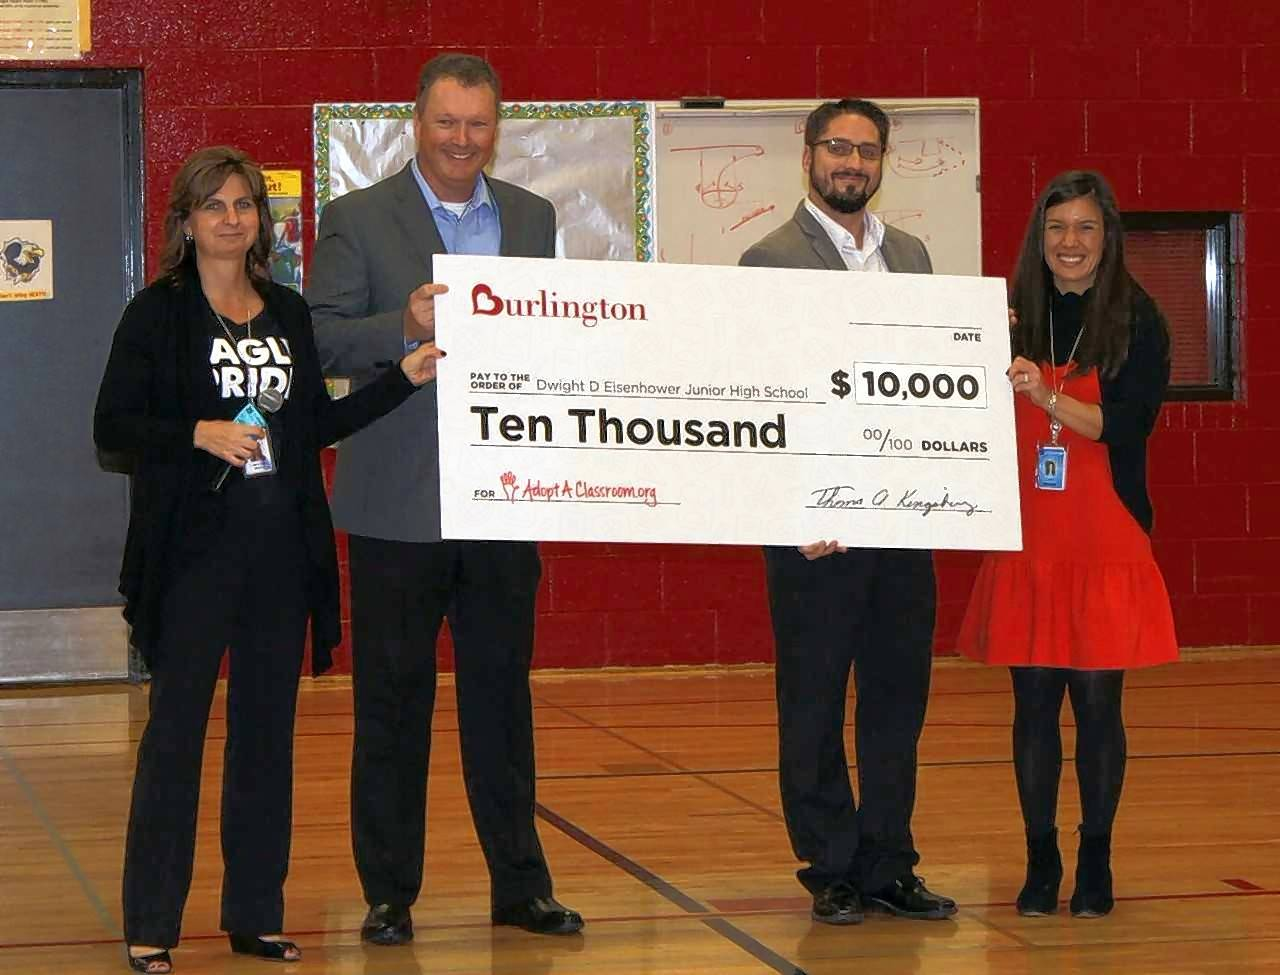 Officials from Burlington Stores recently presented a check for $10,000 to Eisenhower Junior High School in Hoffman Estates. From left, Eisenhower Principal Heather Wilson, Burlington Regional Vice President Tom Floore, Hoffman Estates store manager Dan Hoss and Eisenhower Assistant Principal Amy Houlihan.